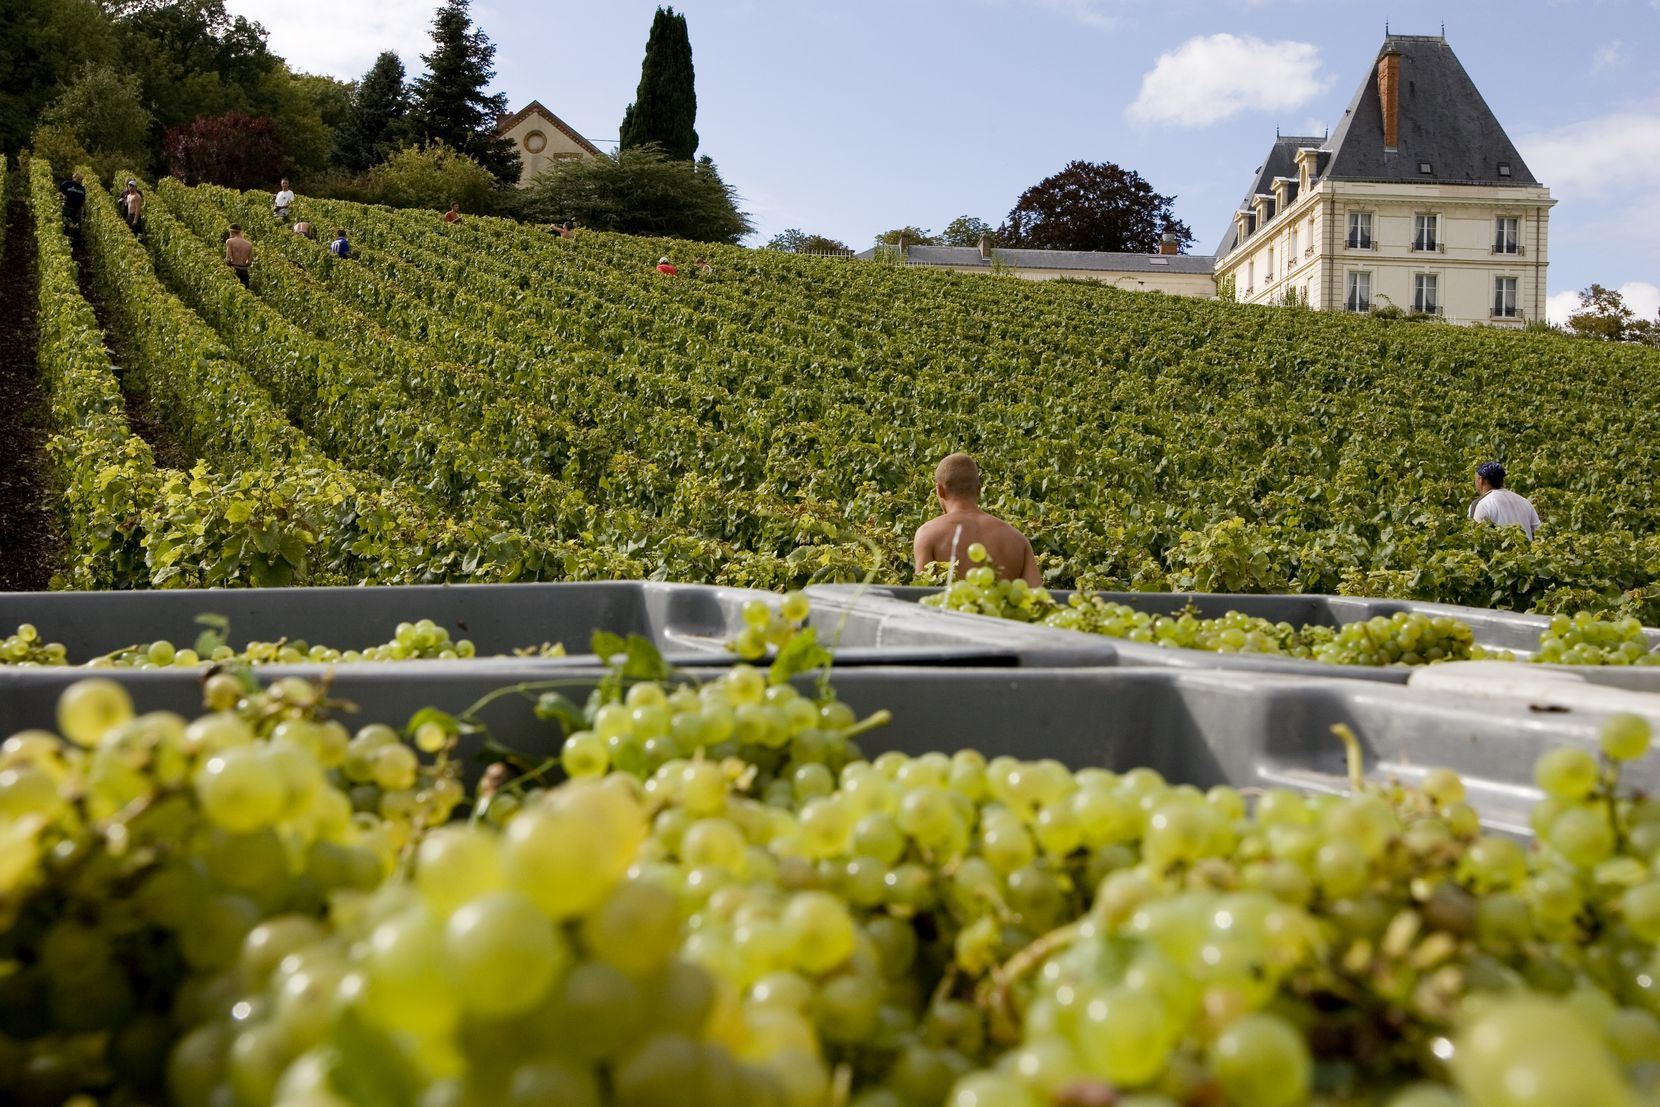 Crates of chardonnay grapes at Moet and Chandon's Château de Saran in France.